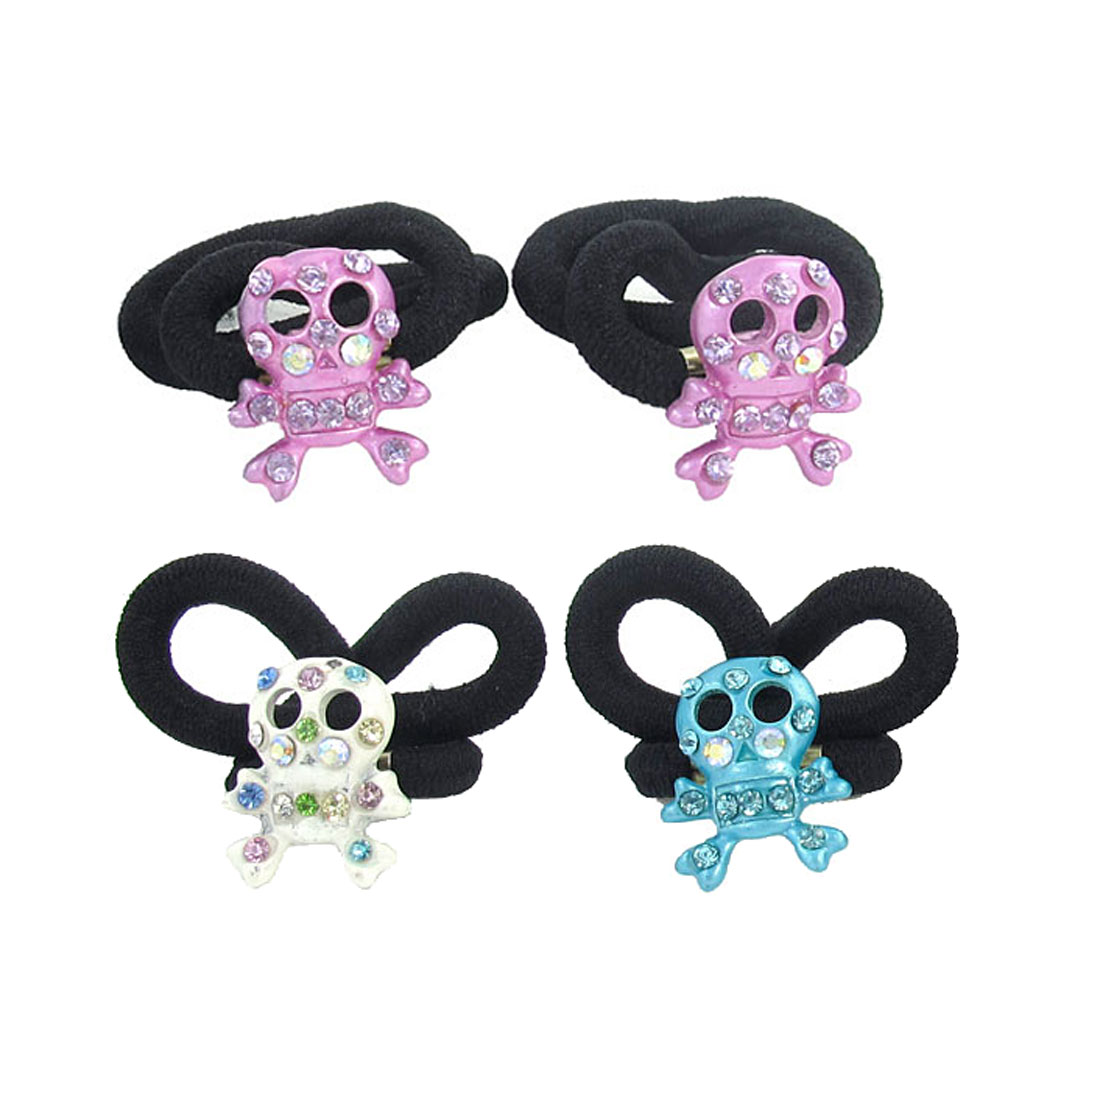 4pcs Kids Glistening Rhinestone Inlaid Skull Head Decor Elastic Rubber Hair Band Tie